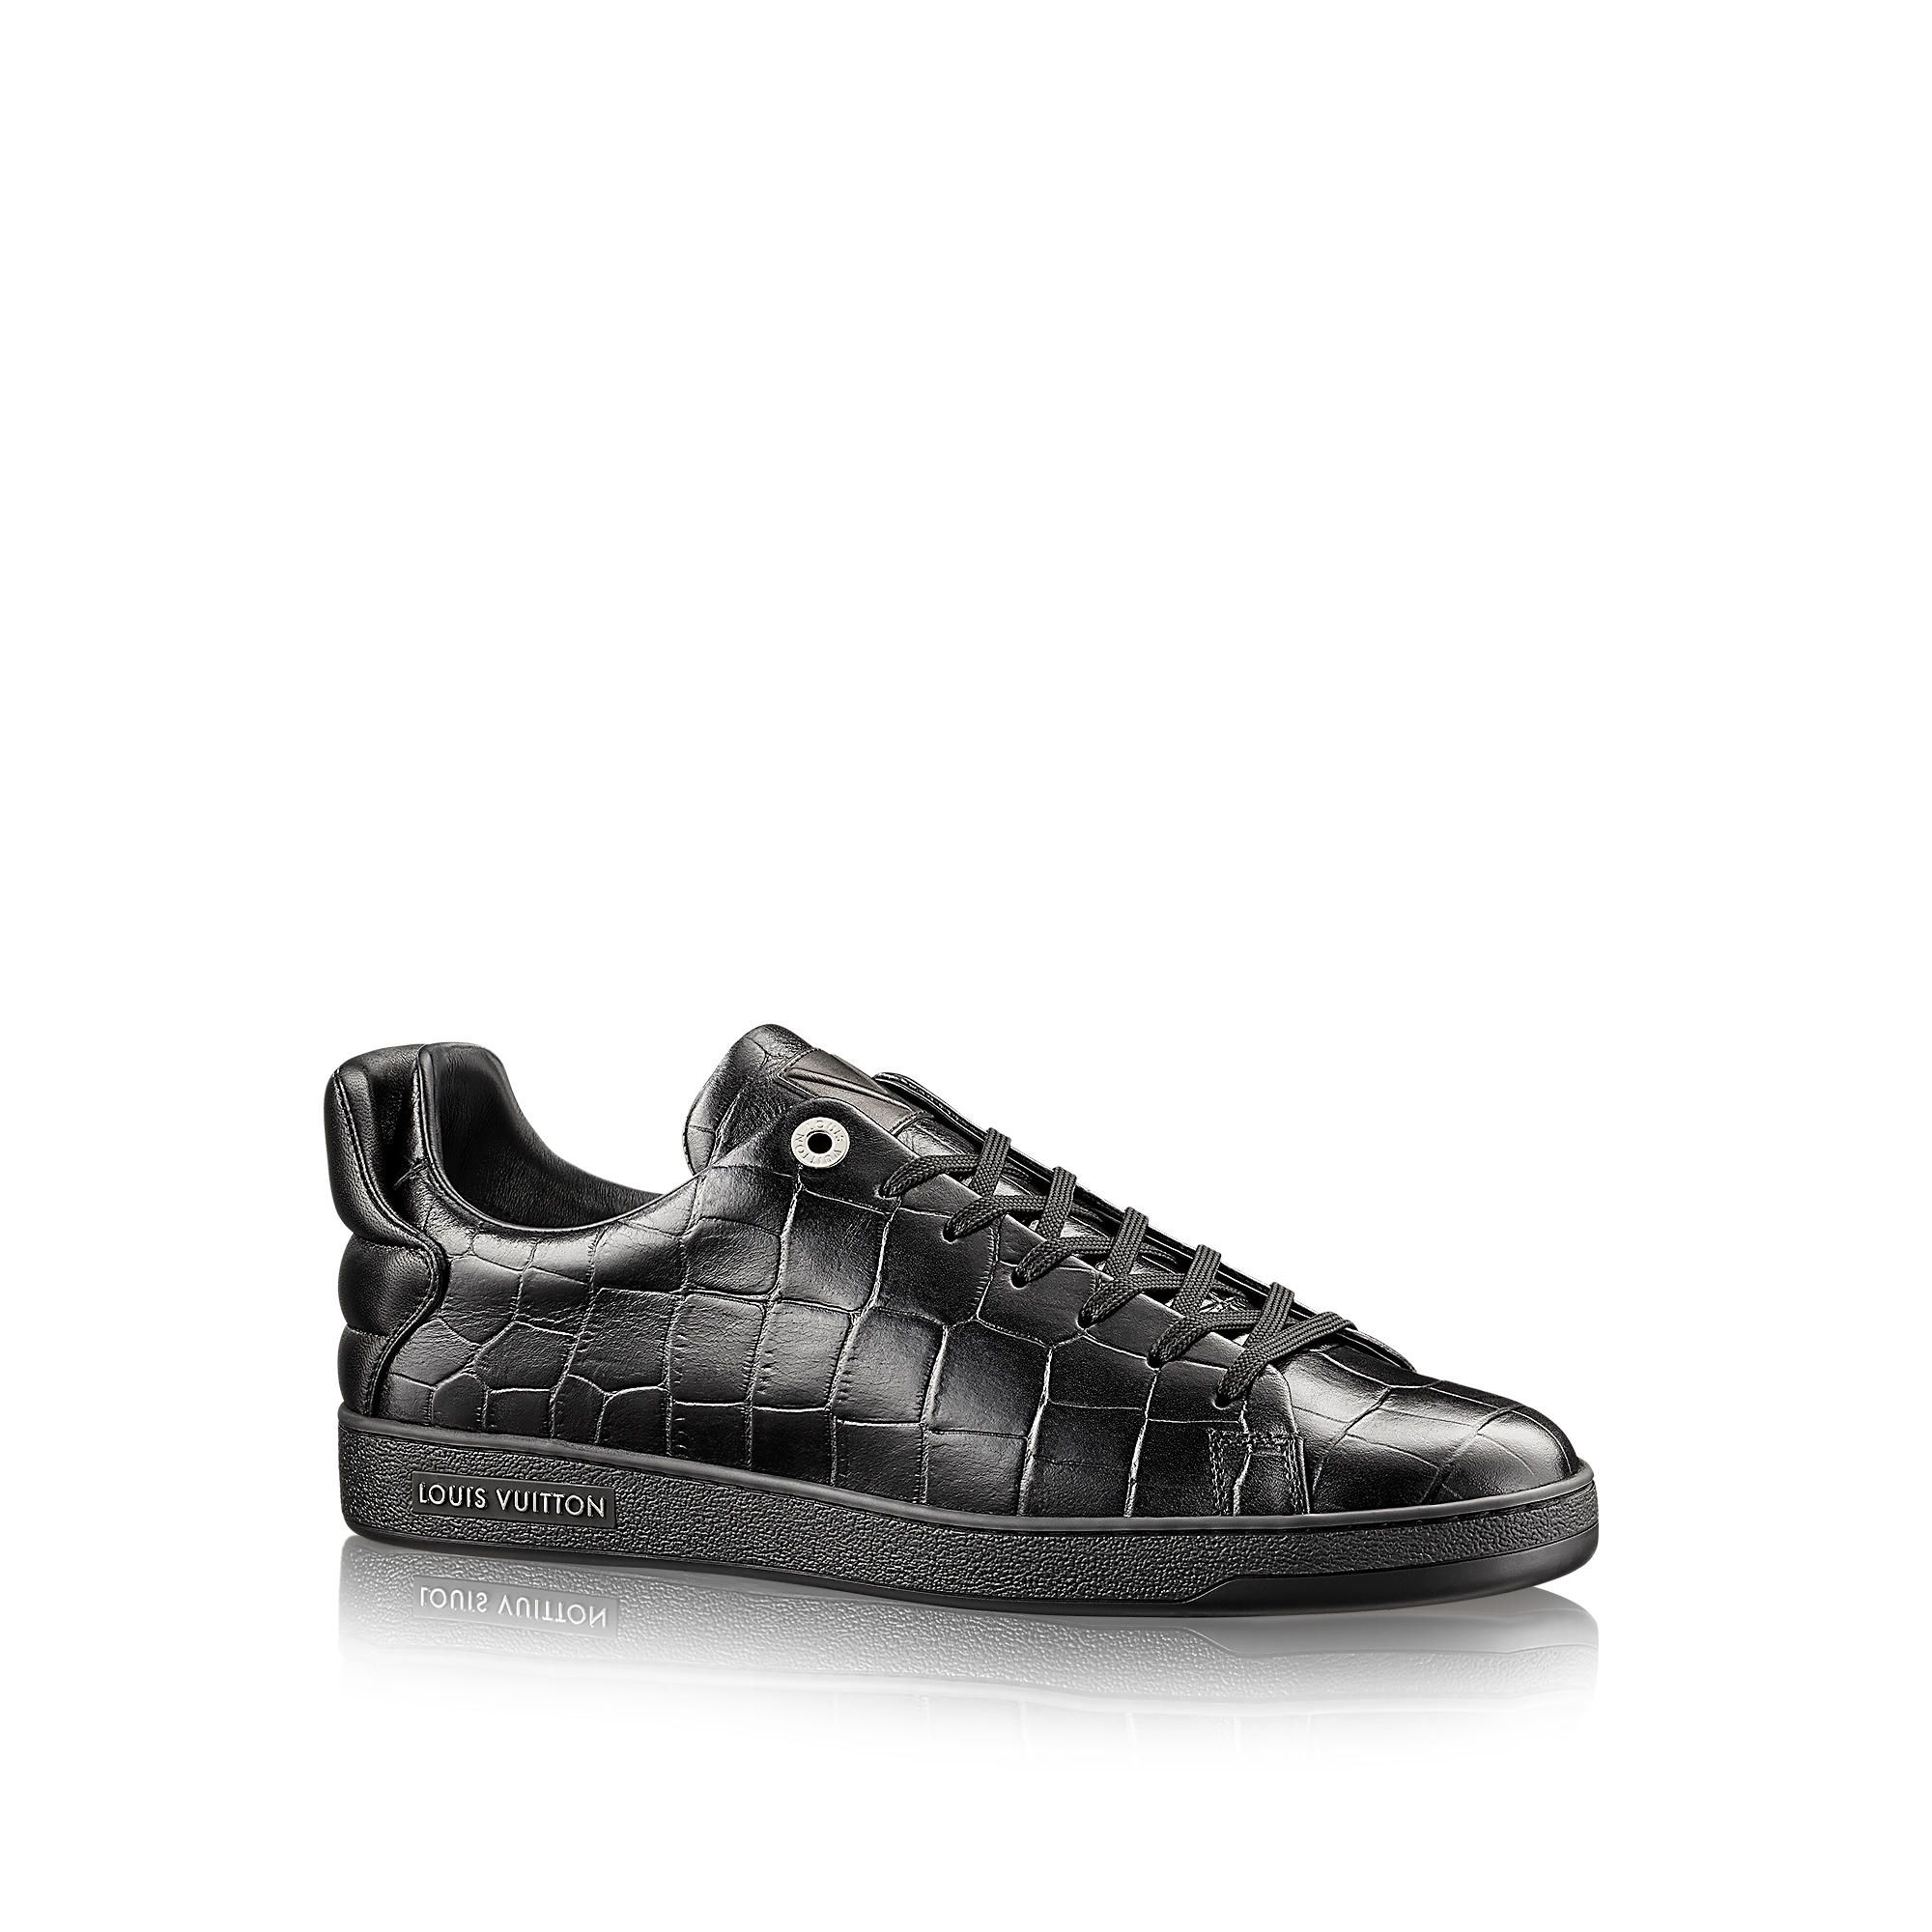 Discover Louis Vuitton Frontrow Sneaker: This modern, clean-cut sneaker in  embossed calf leather is a versatile choice for both city and casual wear.